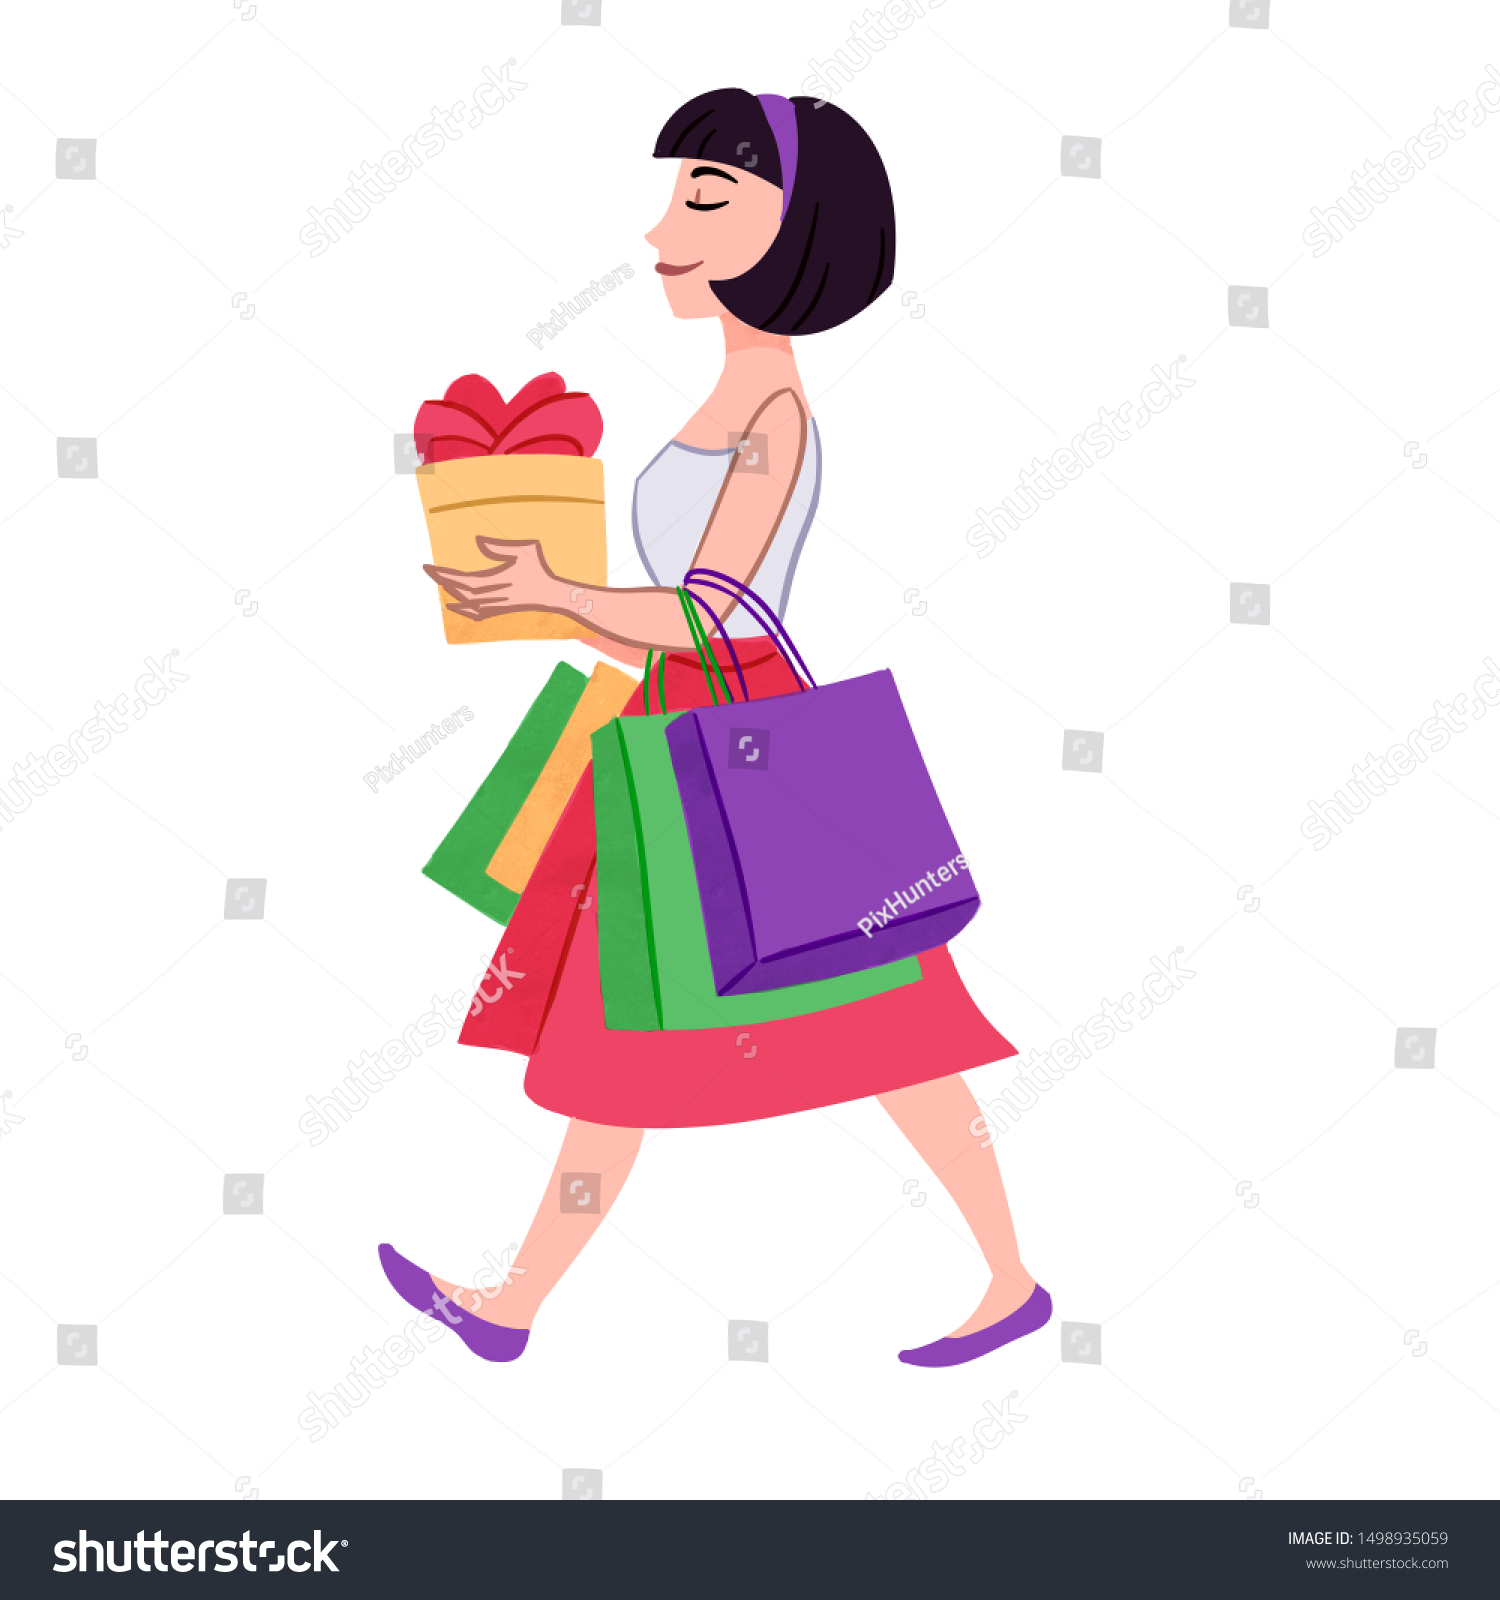 Hand Drawn Illustration Happy Woman Carrying Stock Illustration 1498935059